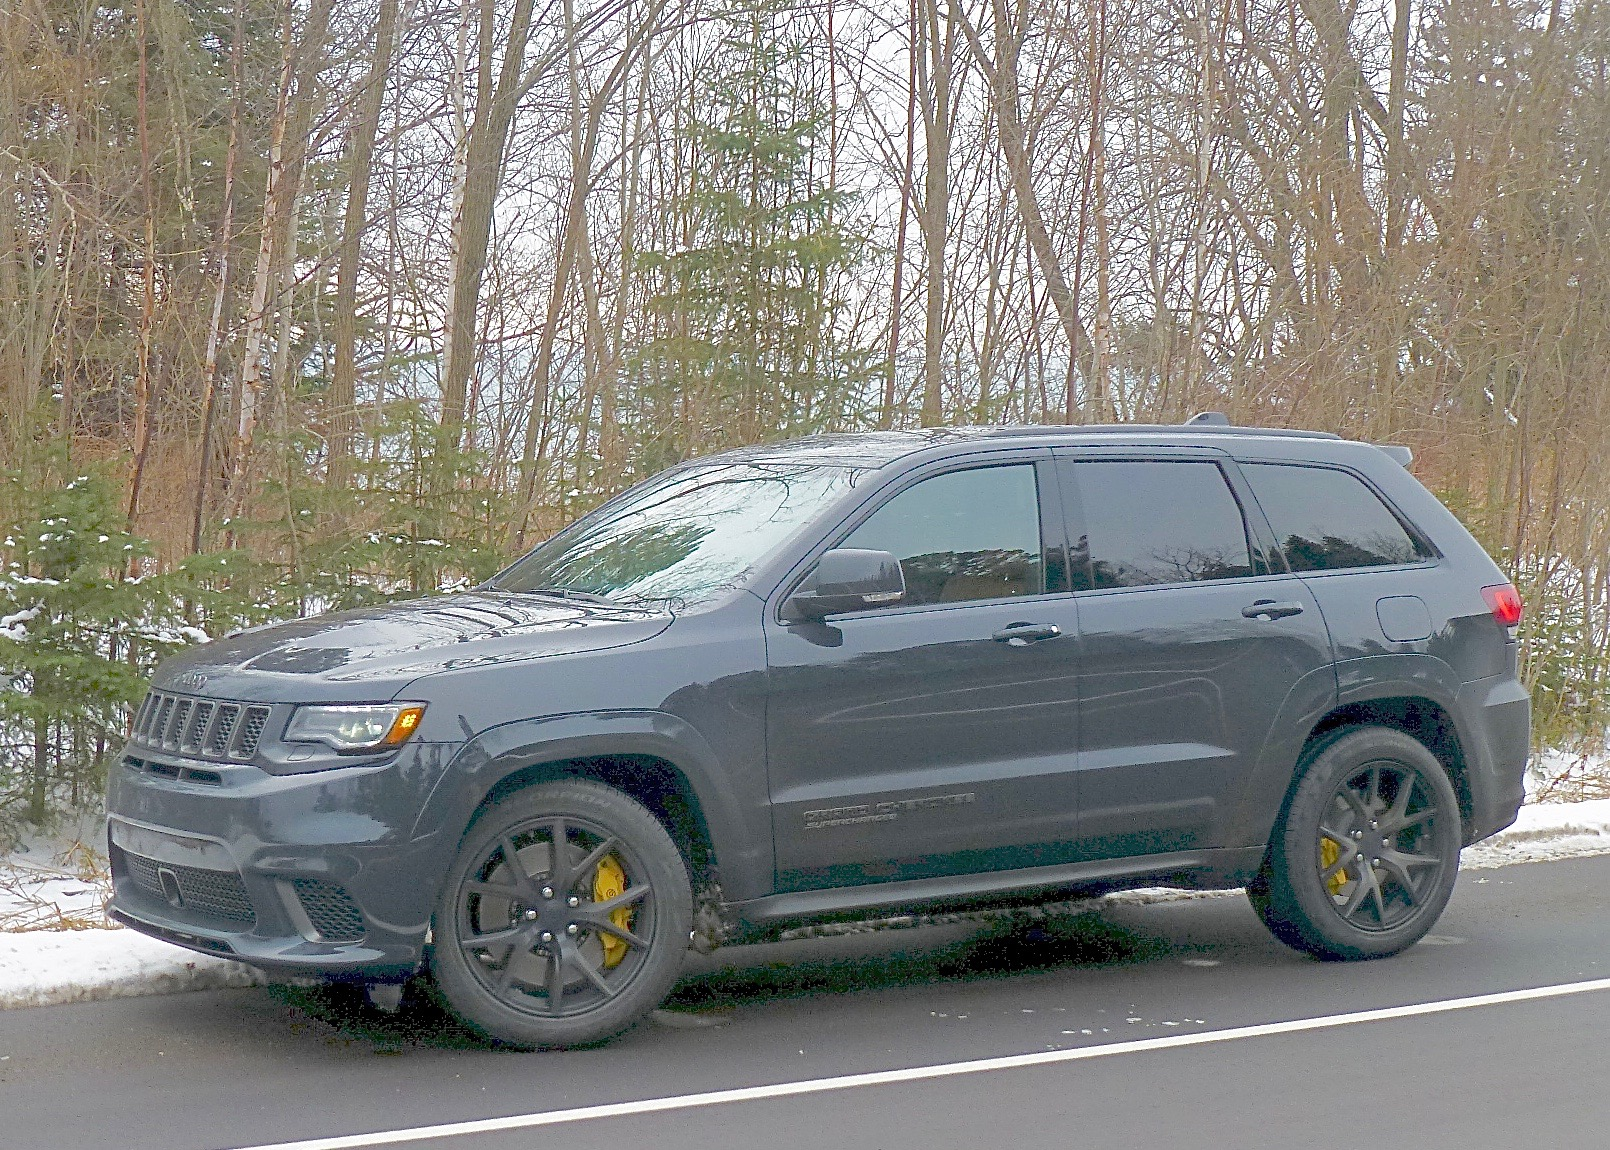 Grand Cherokee is a popular Jeep SUV, but Jeep owners won't believe TrackHawk model.